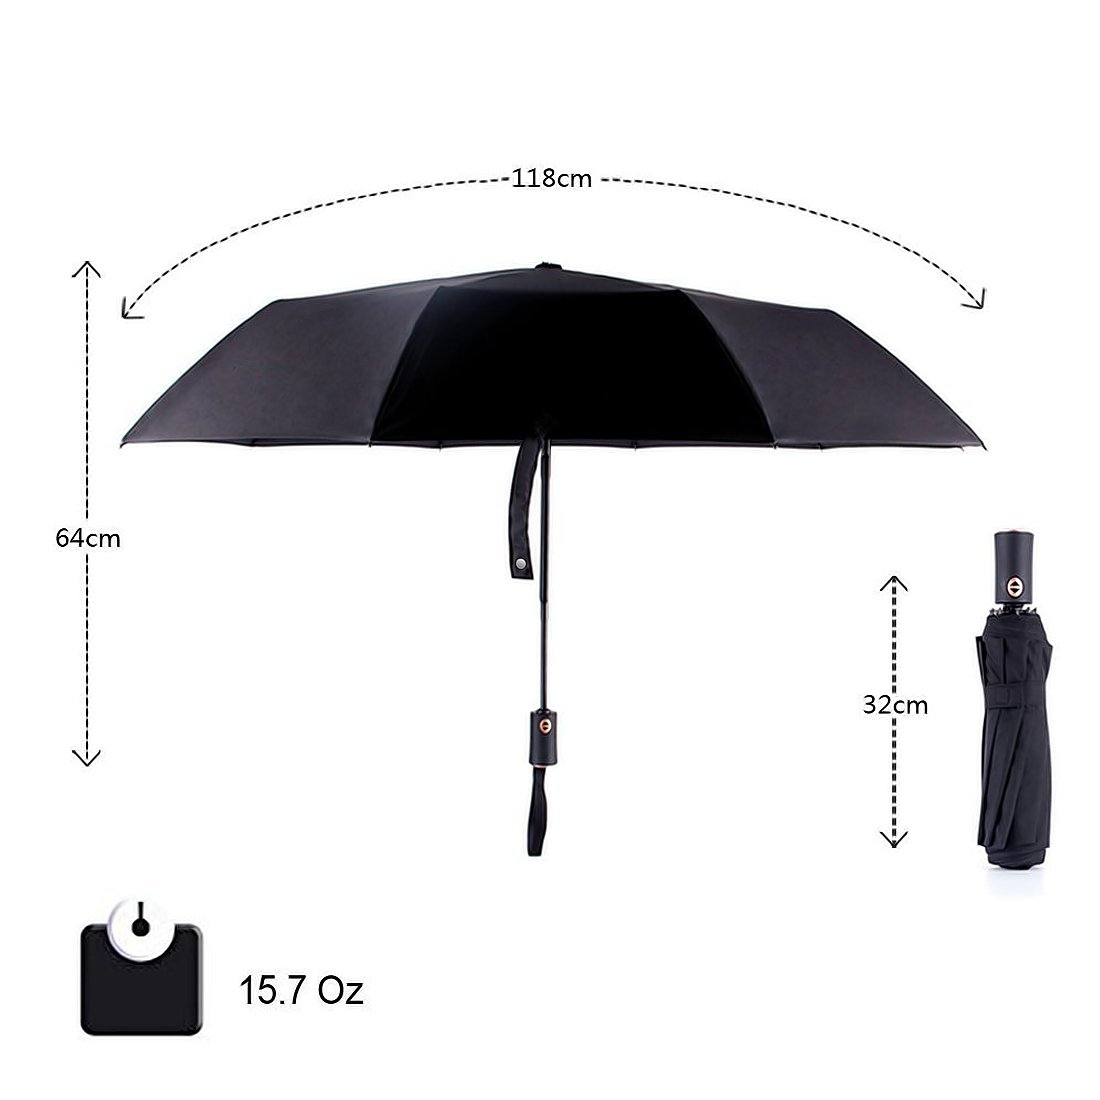 Amazon.com: Labvon Windproof Travel Umbrella, Compact Outdoor Golf Umbrella  with 10 Steel Ribs, Automatic Open and Close Portable Lightweight Fast Dry  for ...